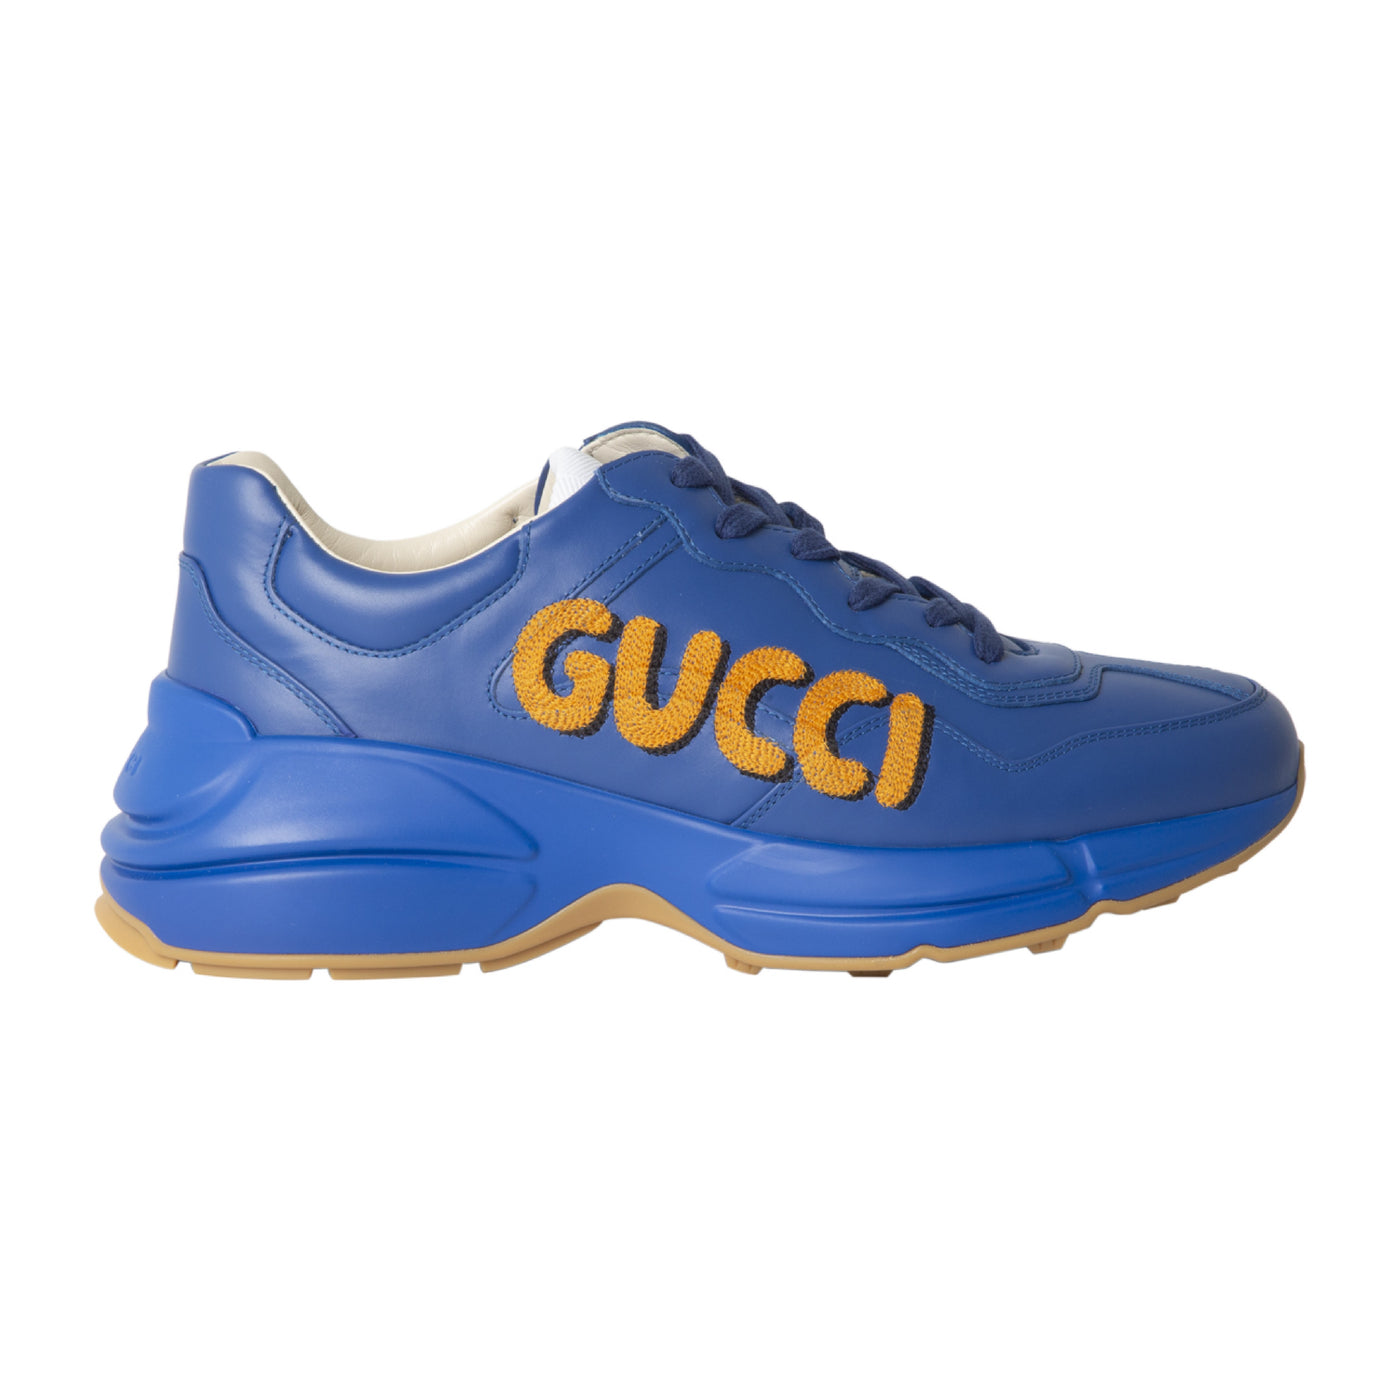 Load image into Gallery viewer, GUCCI CHUNKY LEATHER SNEAKERS BLUE